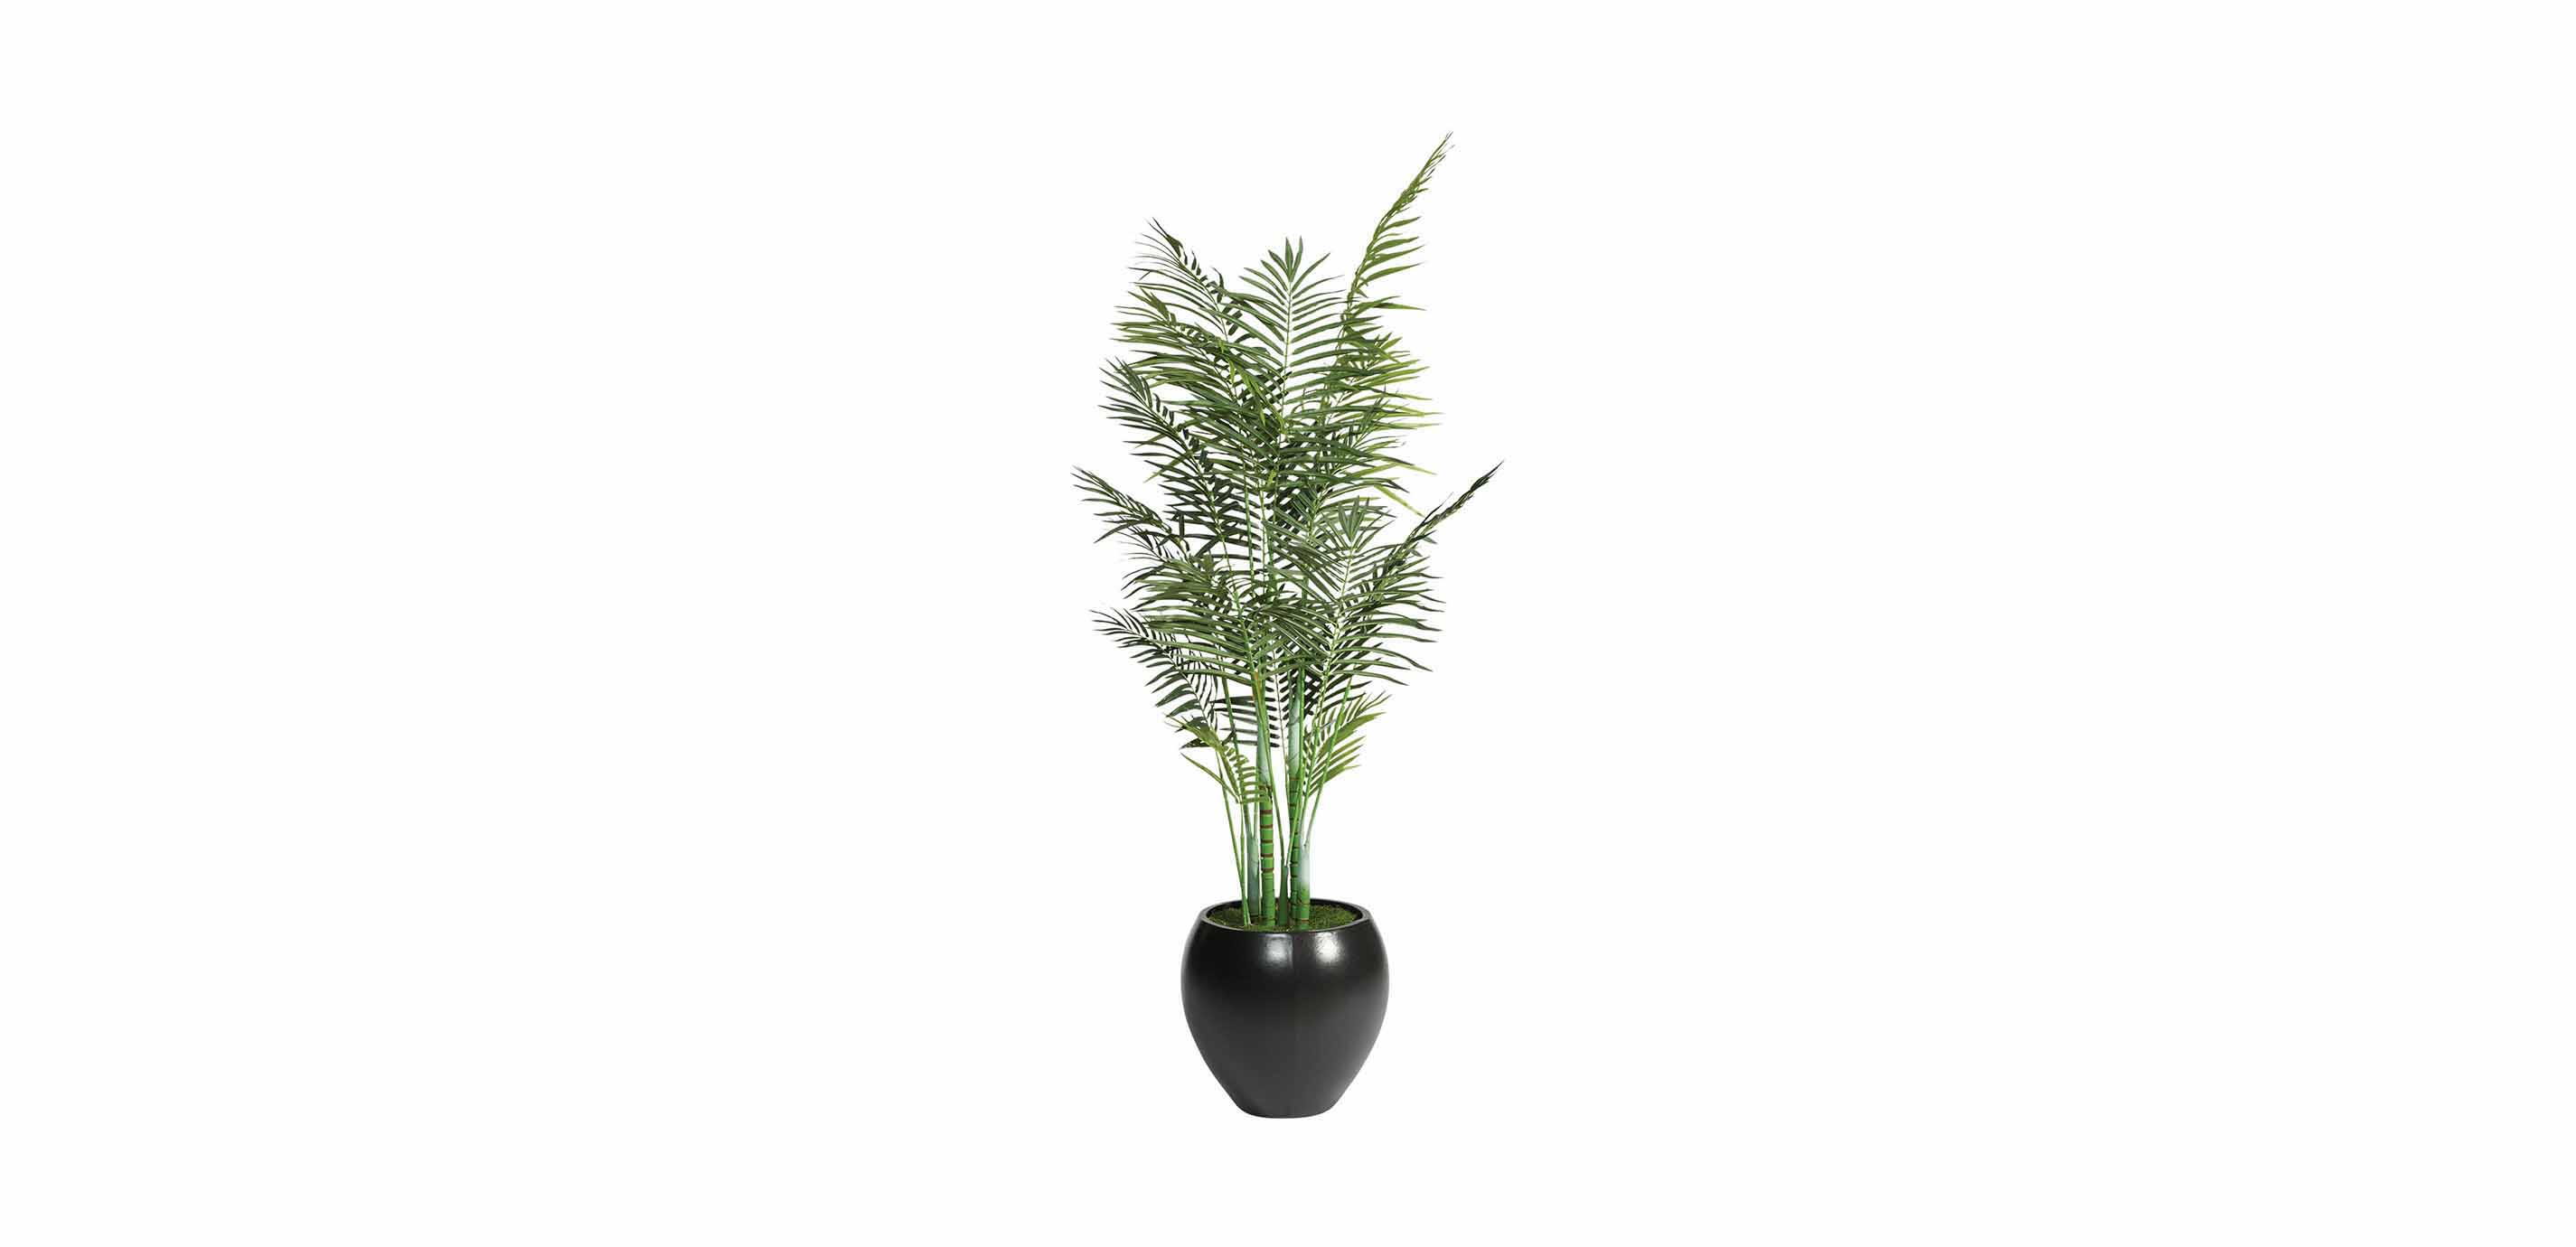 Congenial Areca Palm Tree Areca Palm Tree Florals Trees Ethan Allen Areca Palm Tree Dying Areca Palm Tree Watering houzz-03 Areca Palm Tree